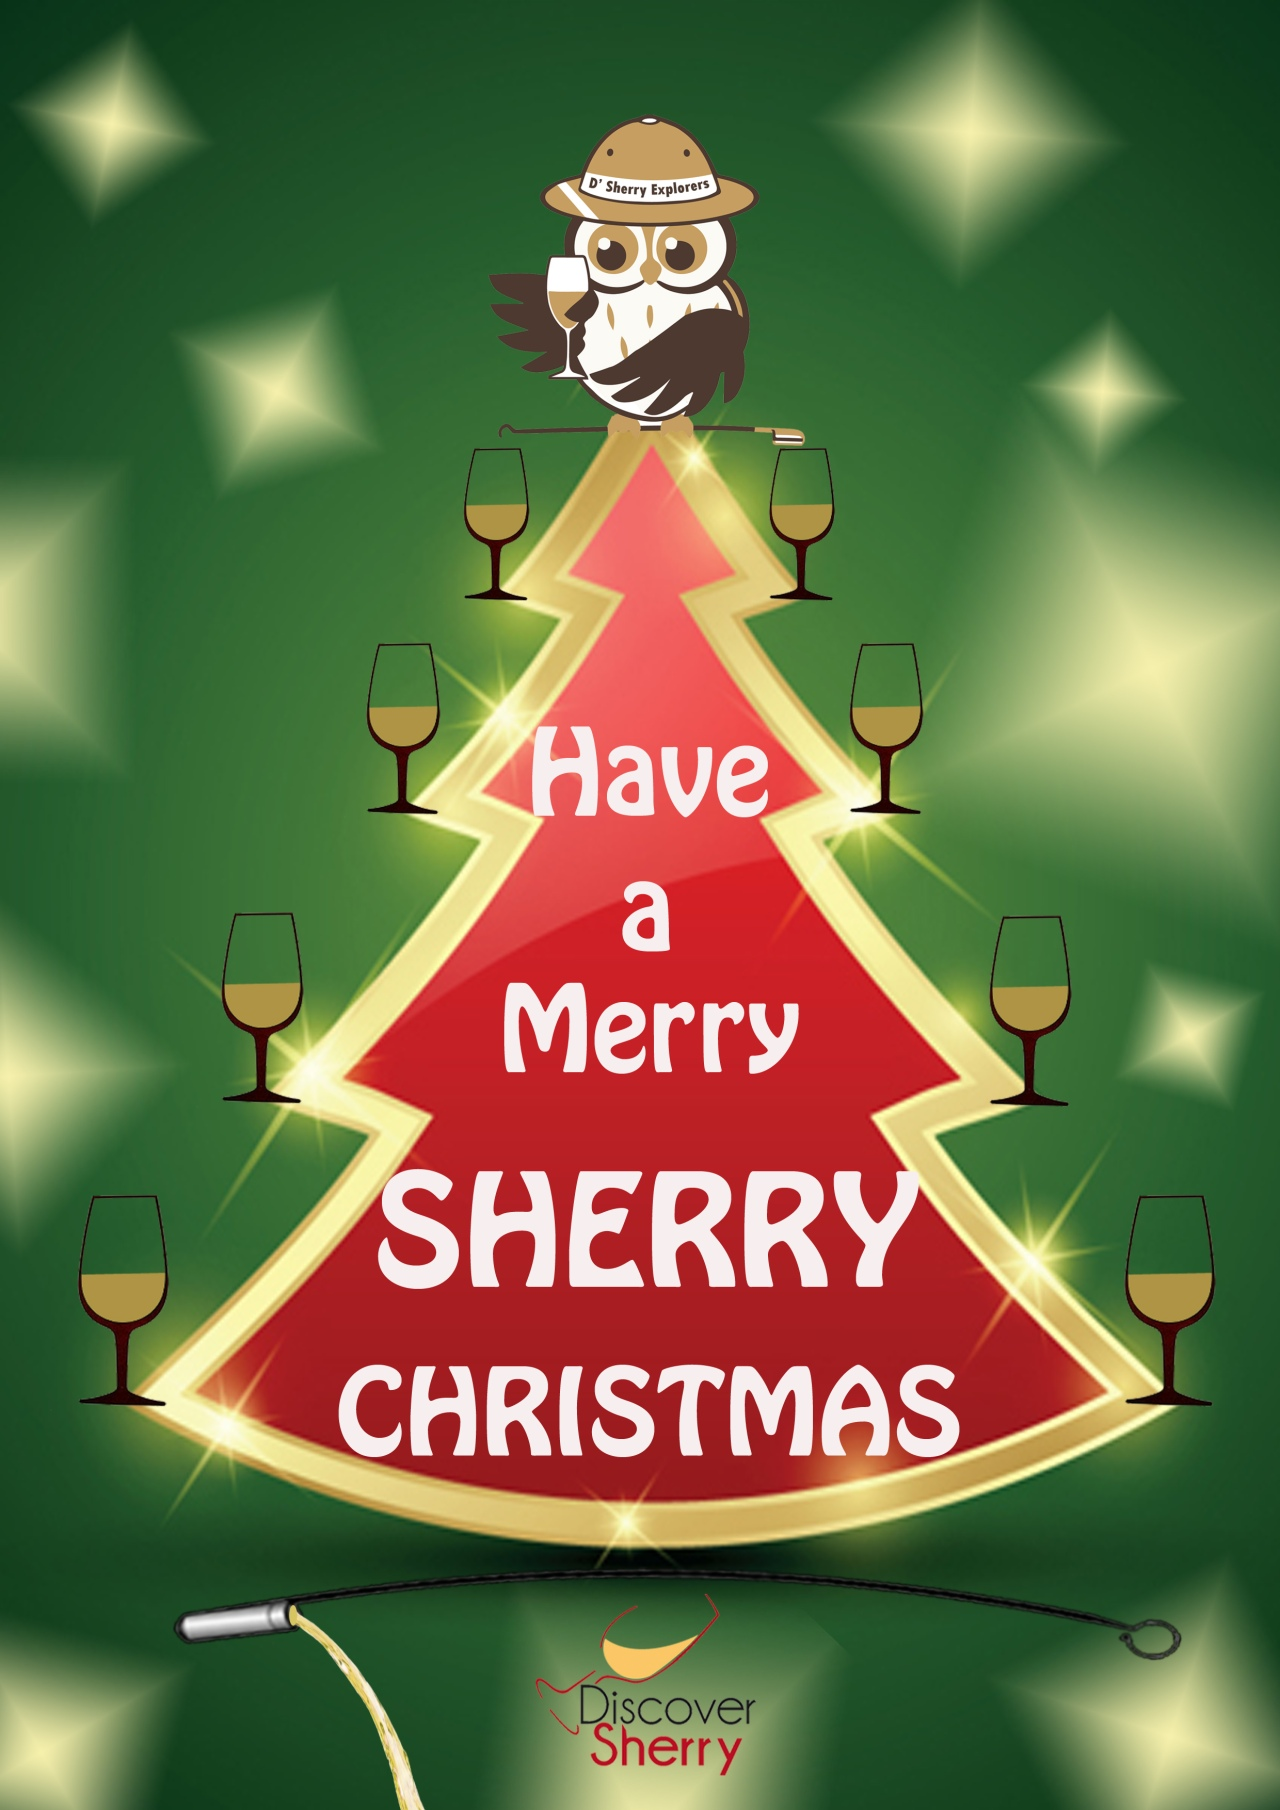 Discover Sherry and Edu wish you a Merry Sherry Christmas.  Discover Sherry y Edu os deseamos Feliz Navidad.